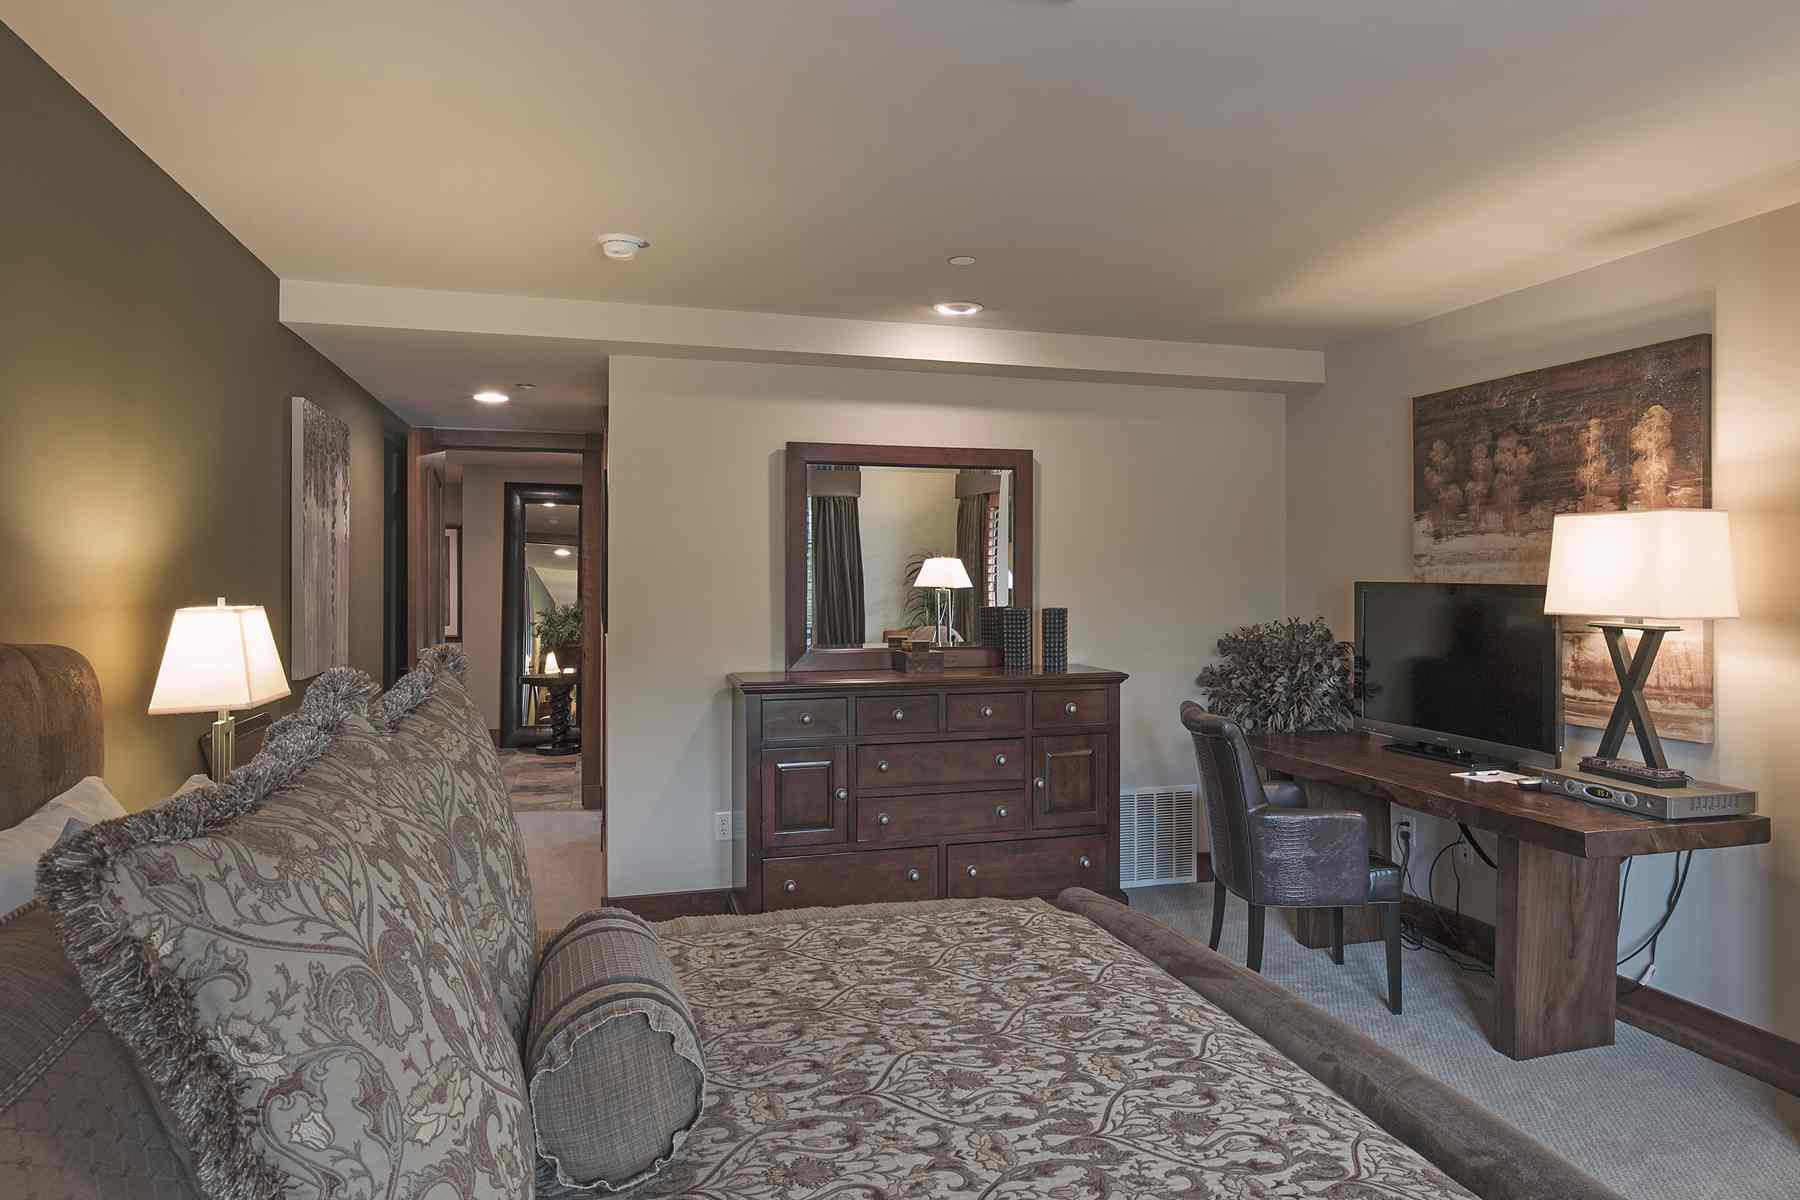 Additional photo for property listing at Best Chilali Penthouse 222 N. 2nd Ave Unit 13 Ketchum, Idaho 83340 Estados Unidos